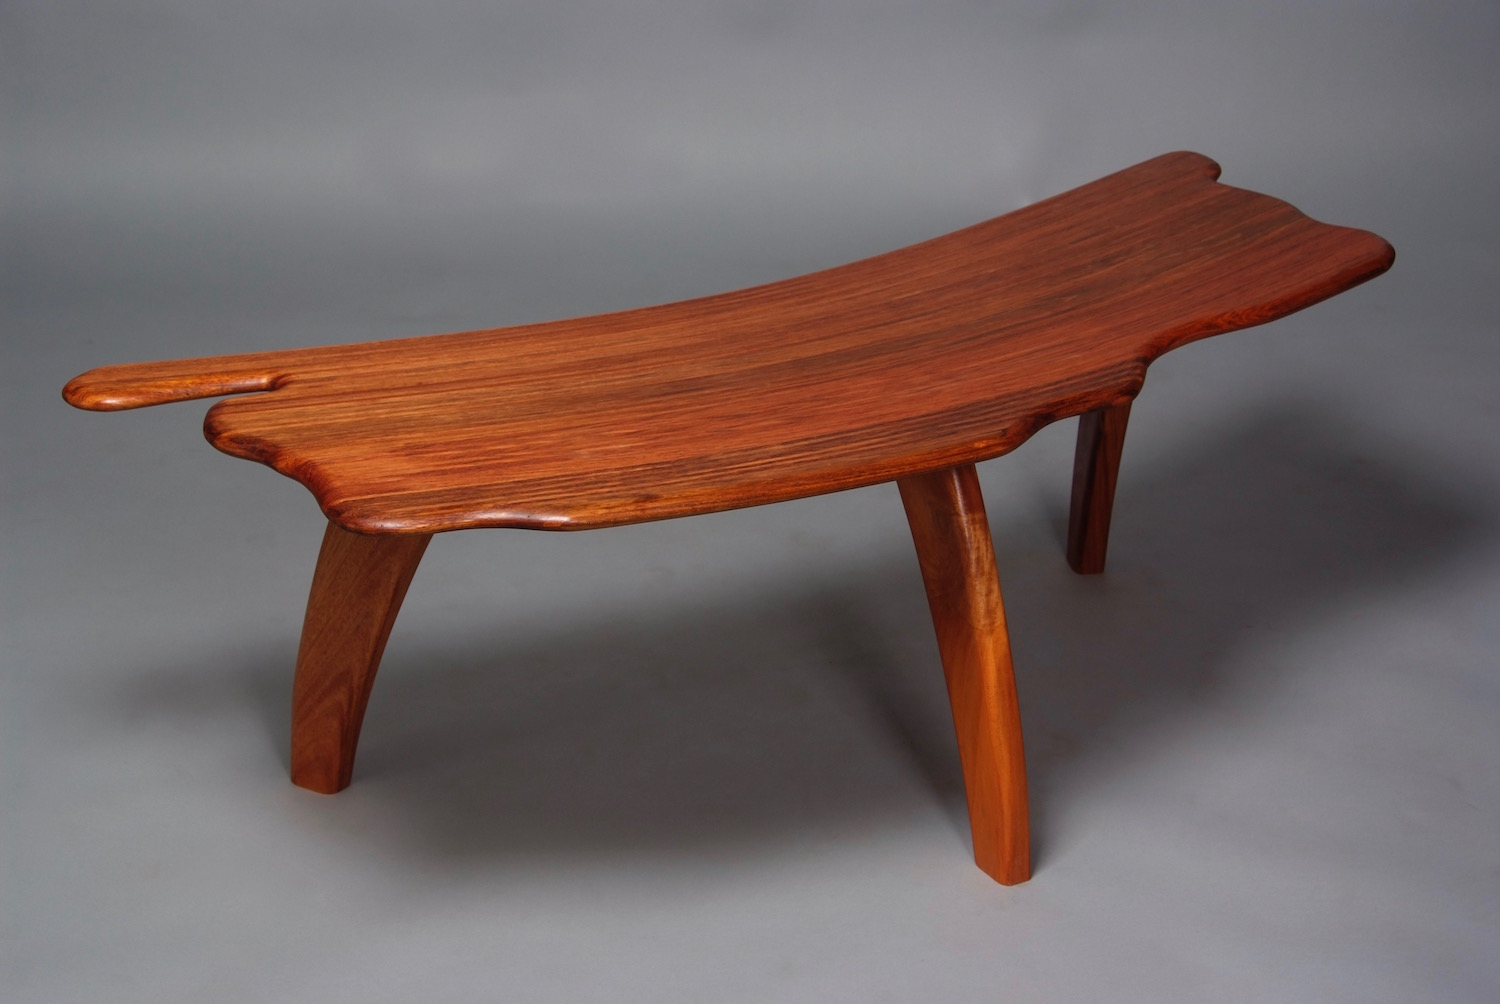 Bent Lamination Coffee Table